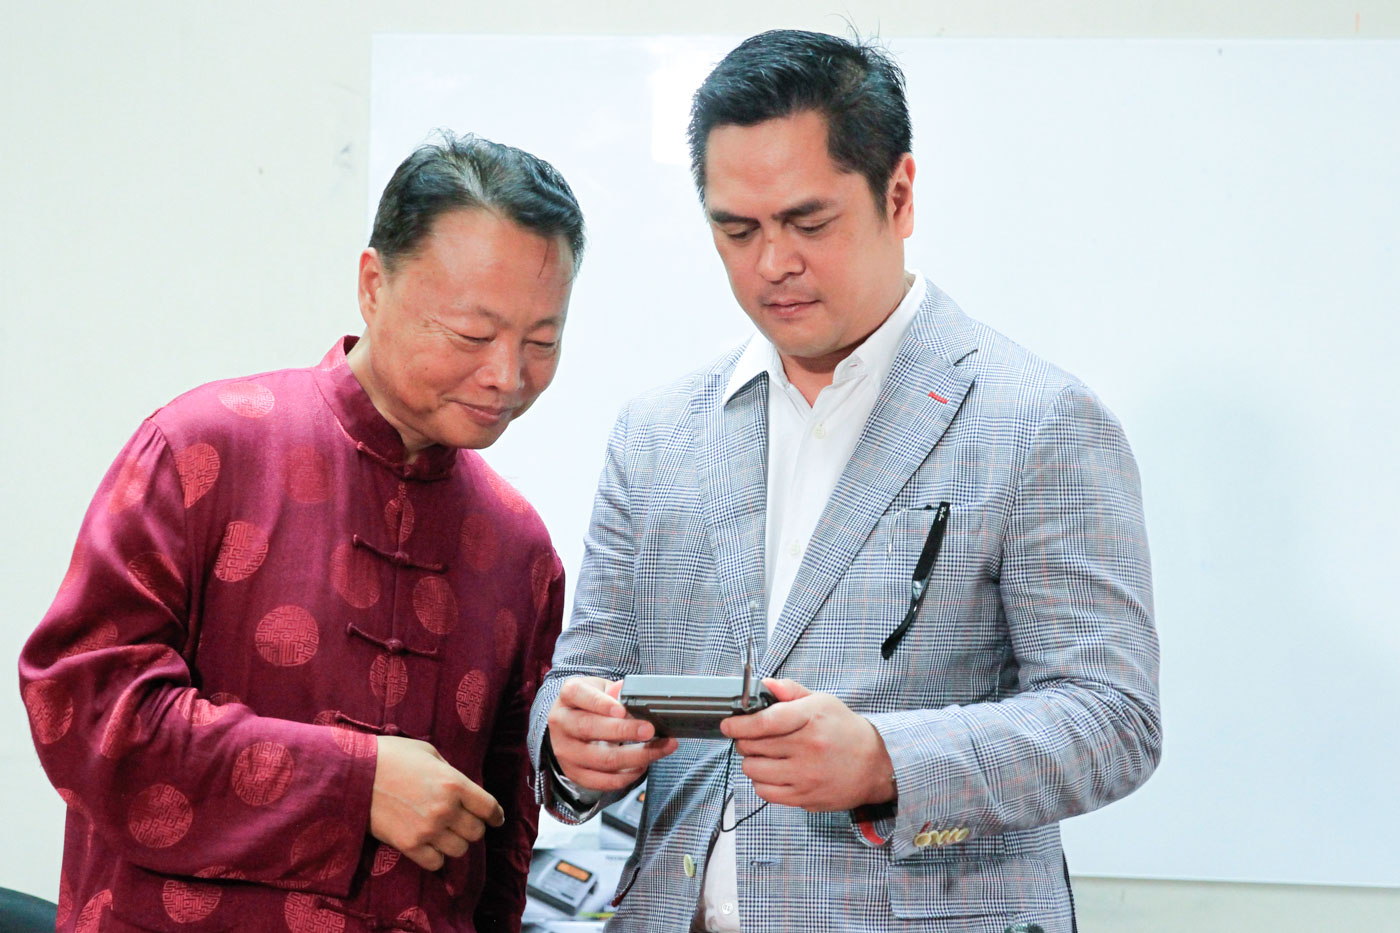 BOOSTING TIES. Philippine Communications Secretary Martin Andanar (right) and Chinese Ambassador Zhao Jianhua (left) try using one of the radios that the Chinese government donated to Philippine government-owned media groups, after a turnover ceremony in Malacau00f1ang Palace on February 27, 2017. Malacau00f1ang file photo